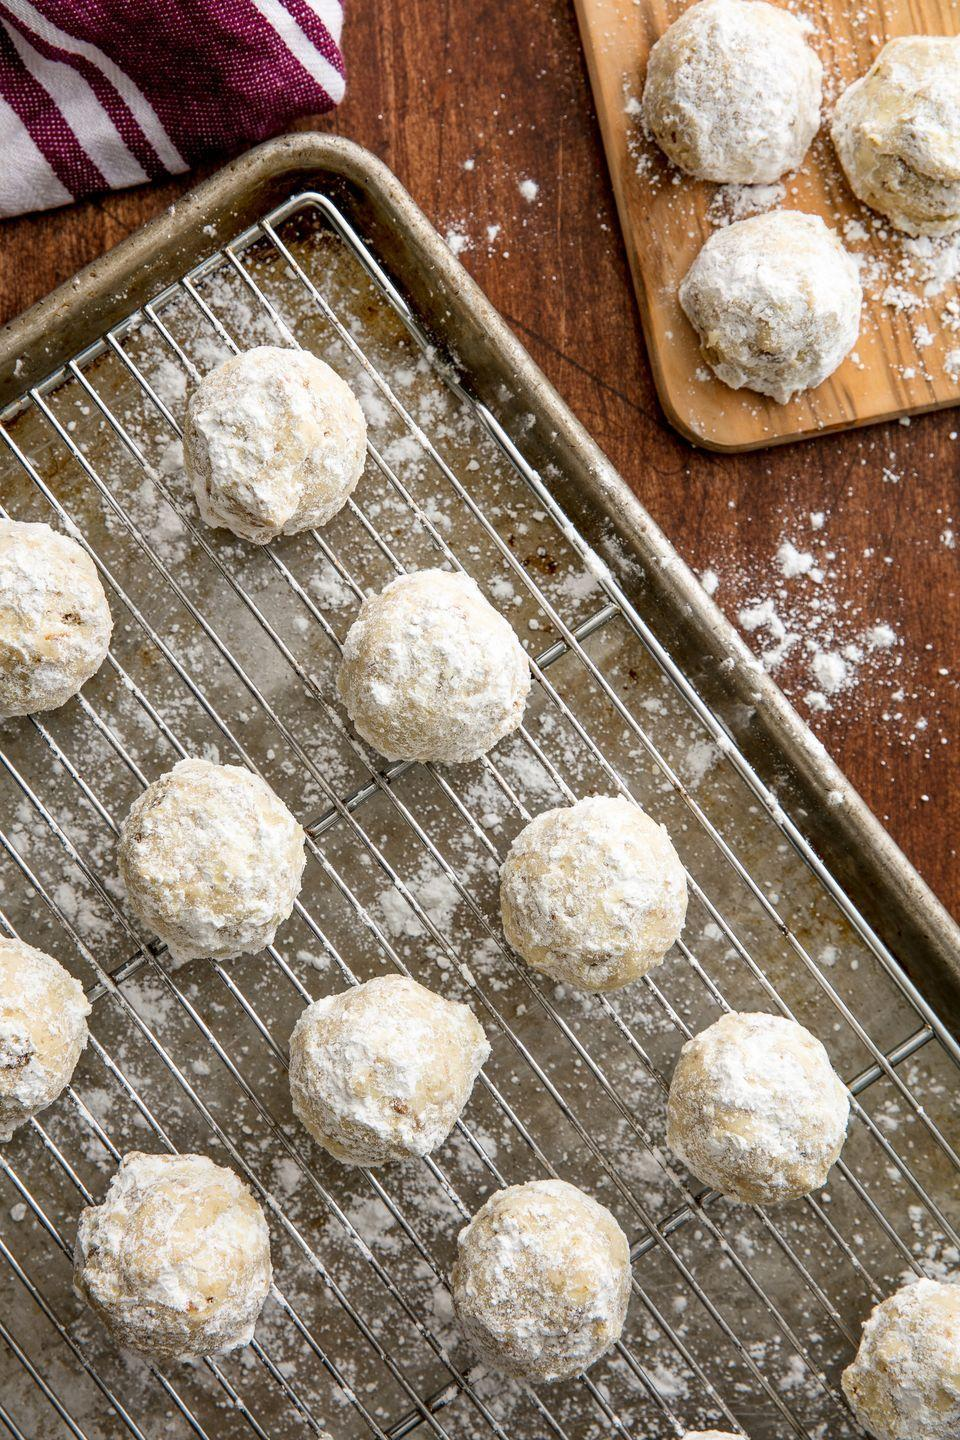 """<p>Even if it isn't a winter wonderland where you live, these cookies will bring the Christmas cheer. </p><p>Get the recipe from <a href=""""https://www.delish.com/cooking/recipe-ideas/recipes/a56364/best-snowball-cookies-recipe/"""" rel=""""nofollow noopener"""" target=""""_blank"""" data-ylk=""""slk:Delish"""" class=""""link rapid-noclick-resp"""">Delish</a>. </p>"""